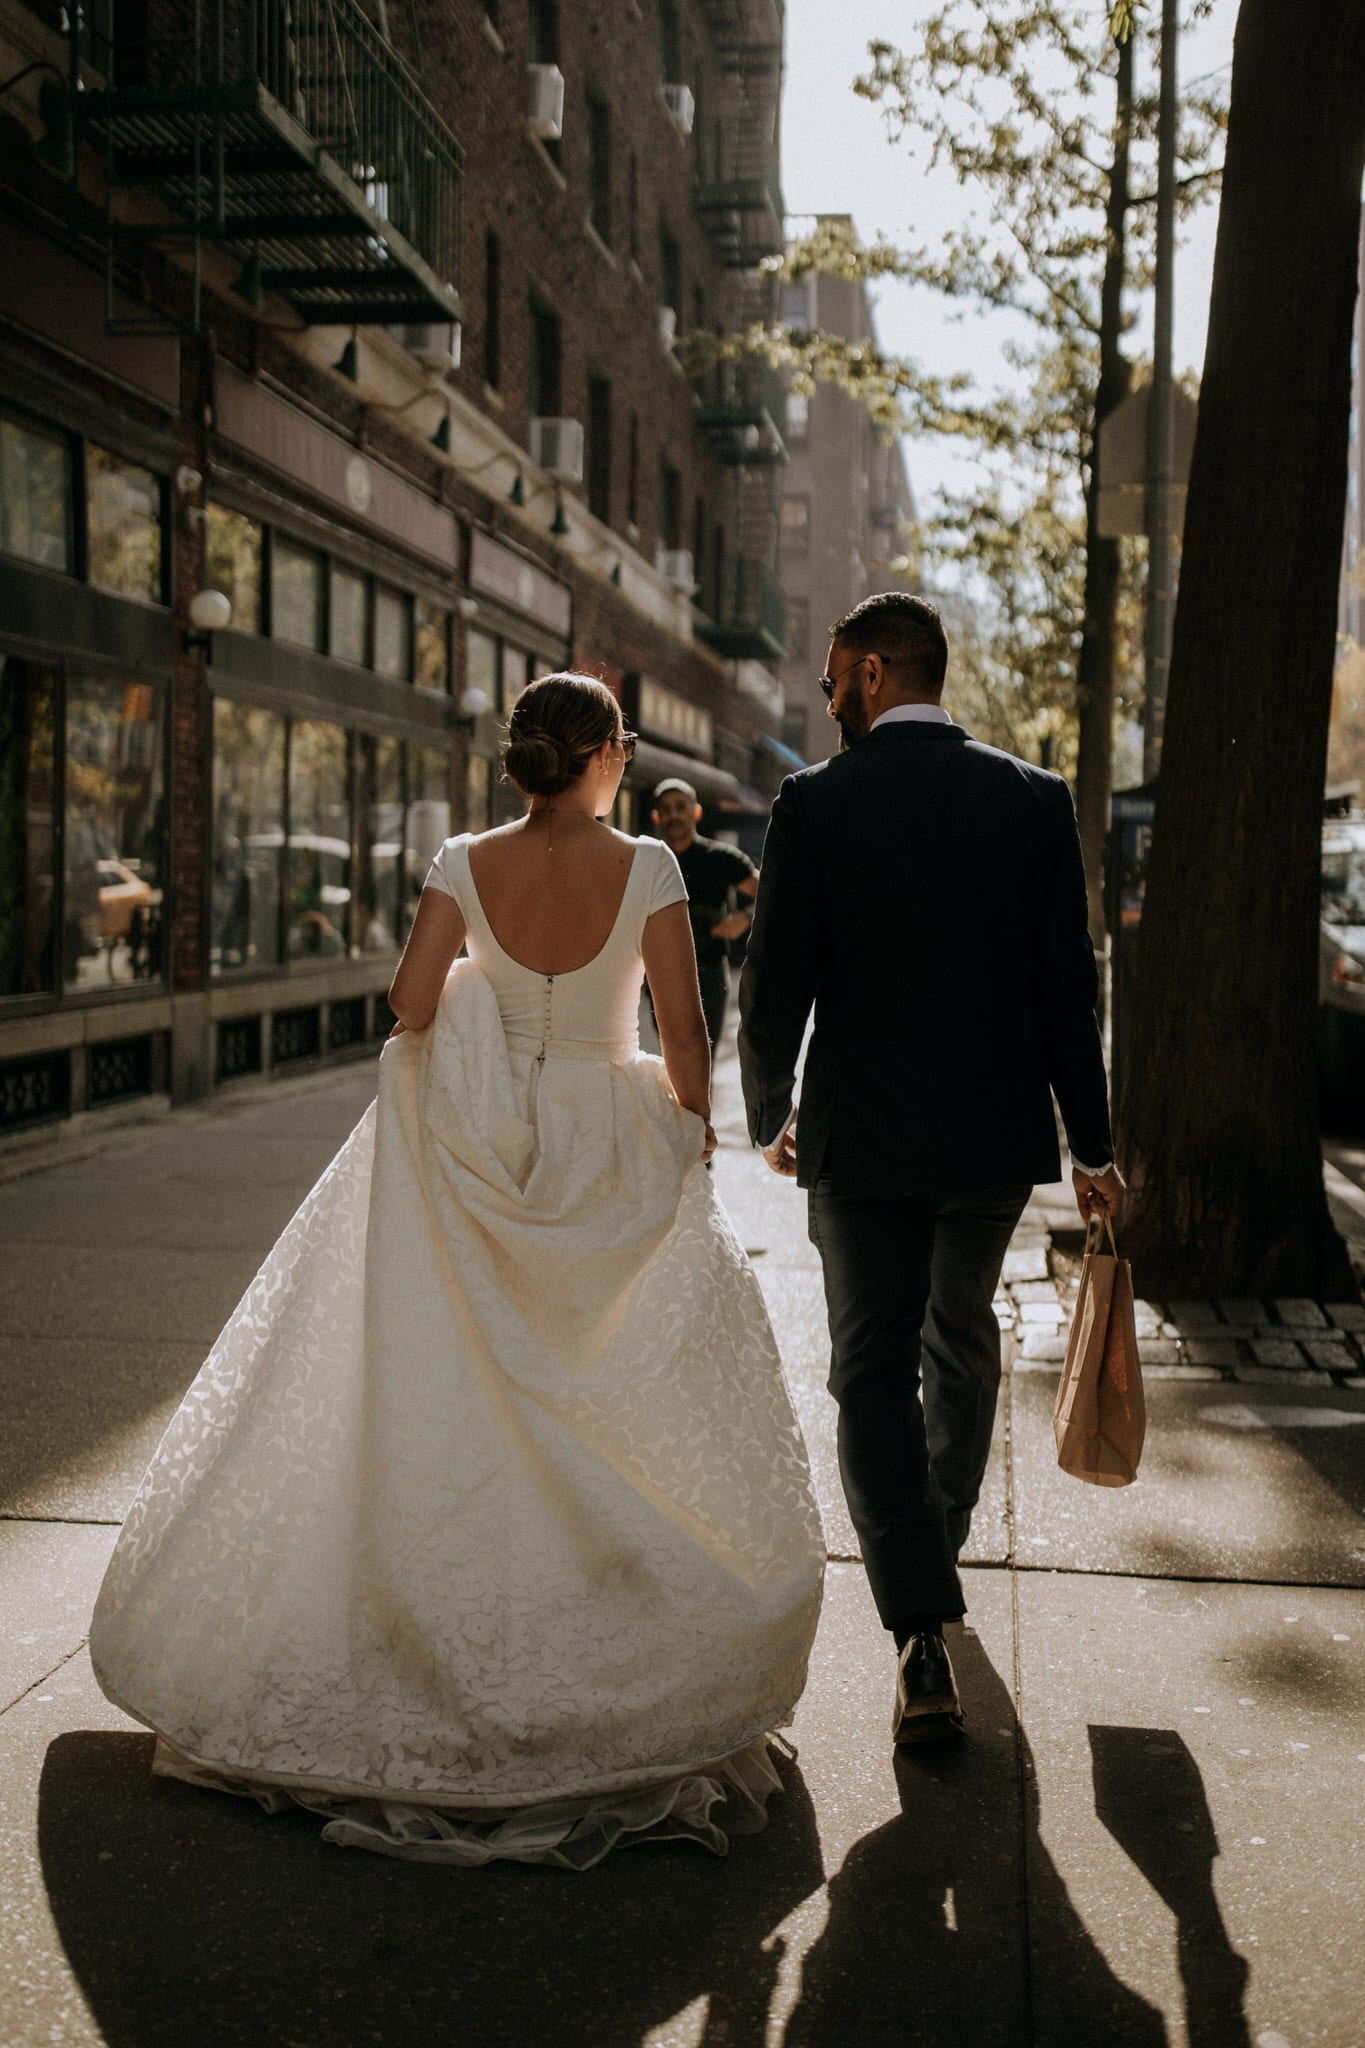 The bride and groom walk through the streets of New York. Wedding Photographer Brent Calis.